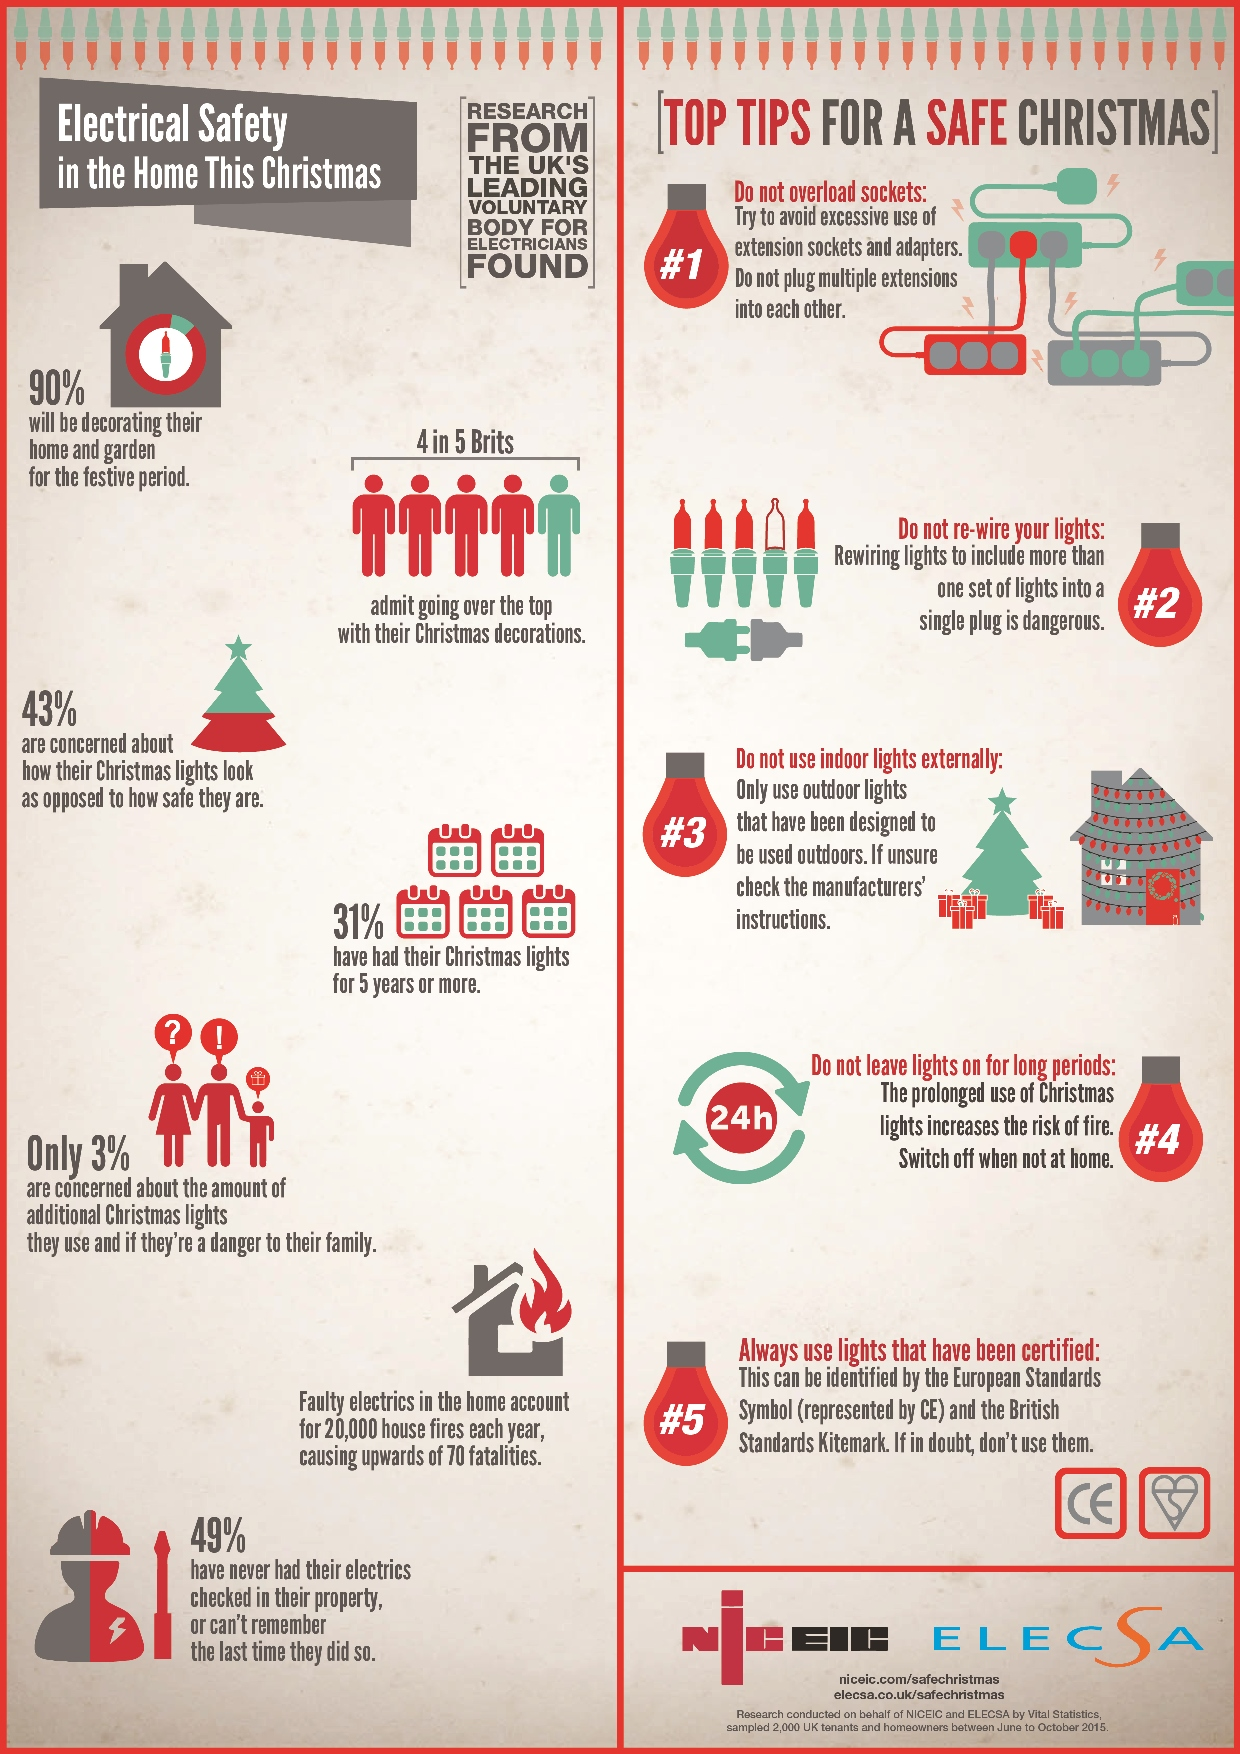 Over 19 million homes at risk of fire this Christmas |